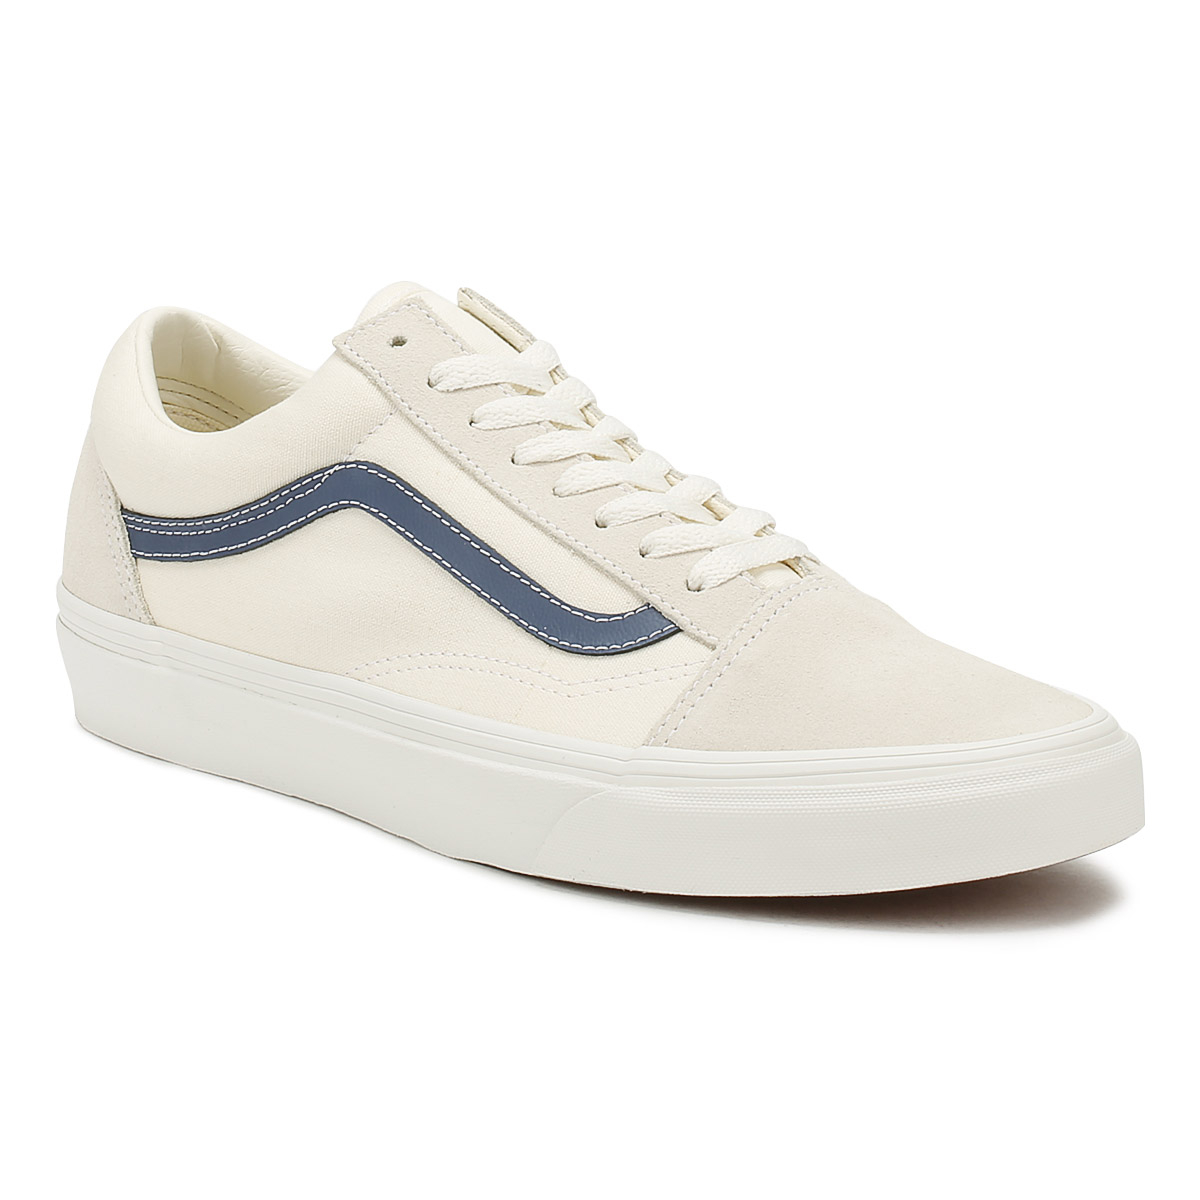 2148d49b32d3da Vans Mens Old Skool Trainers Vintage White   Indigo Blue Lace Up Skate Shoes